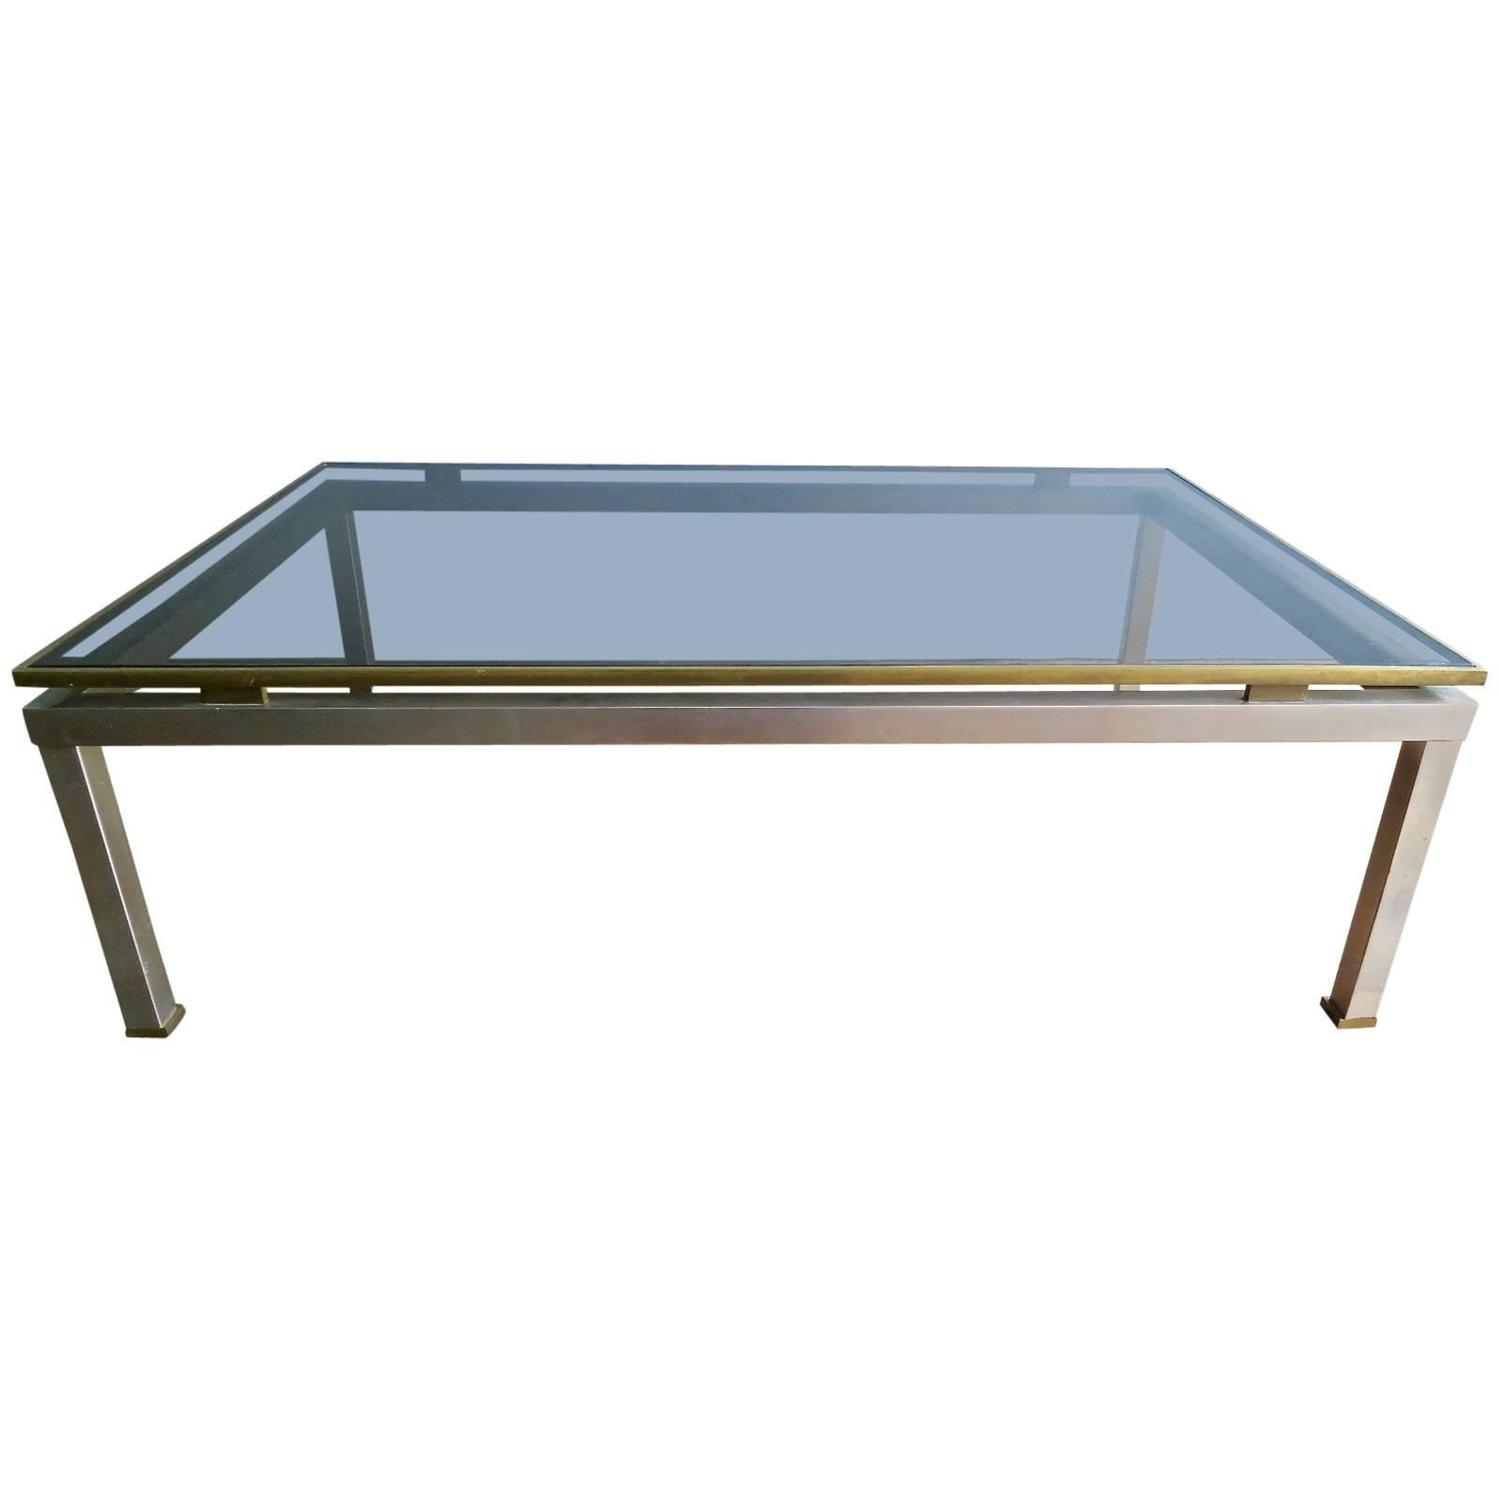 Large Brass And Steel Coffee Table By Guy Lefevre For Maison Jansen At 1stdibs